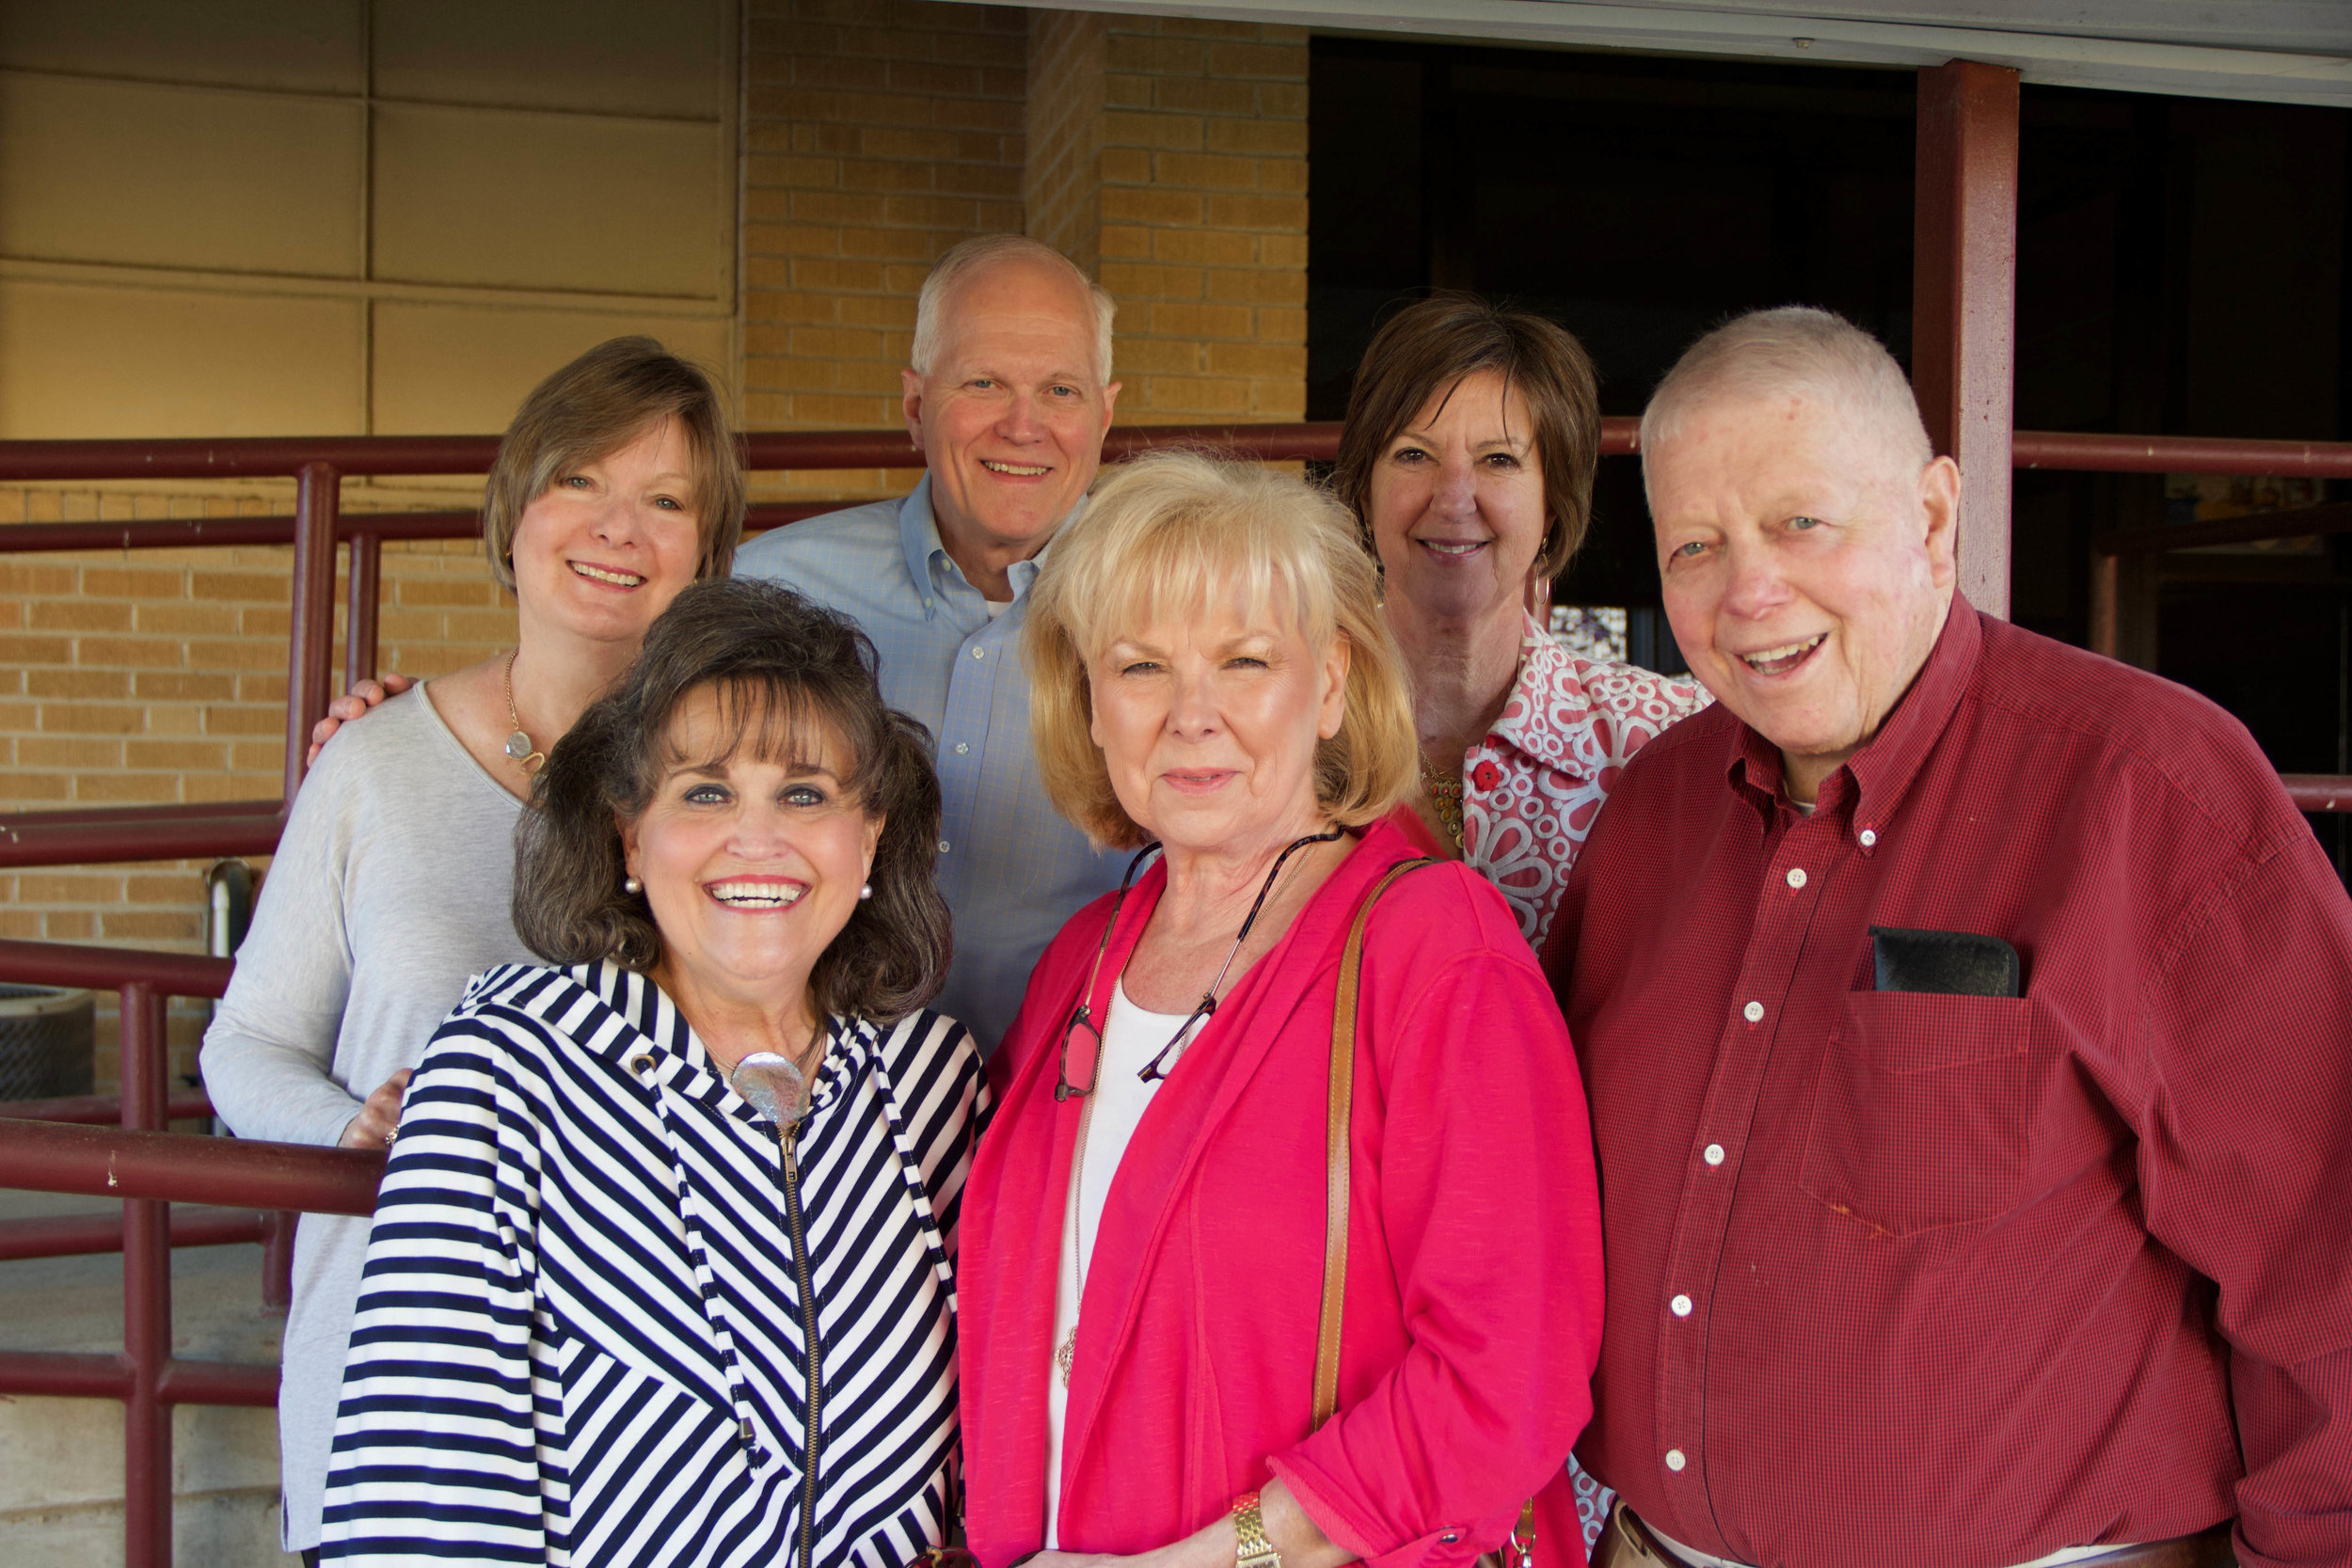 Jackie Gooding, Mary Katherine Weber, Bill Gooding, Pat Nance, Gail Eichler and Allen Nance